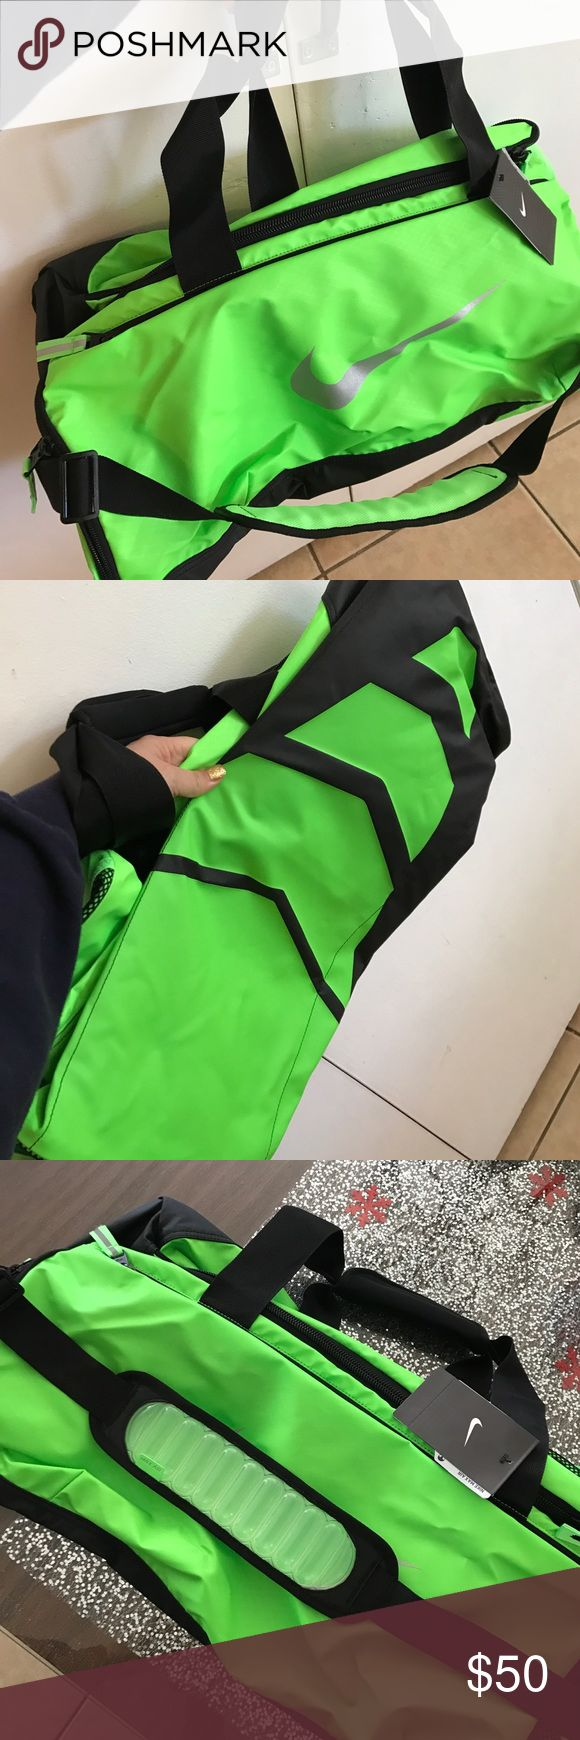 Men's Nike Max Duffel Bag **Brand New**  bright green Men's Nike Air Max duffel bag great for the gym and sports bag is new and didn't get a pic of it open because it's still shut closed with tags Nike Bags Duffel Bags